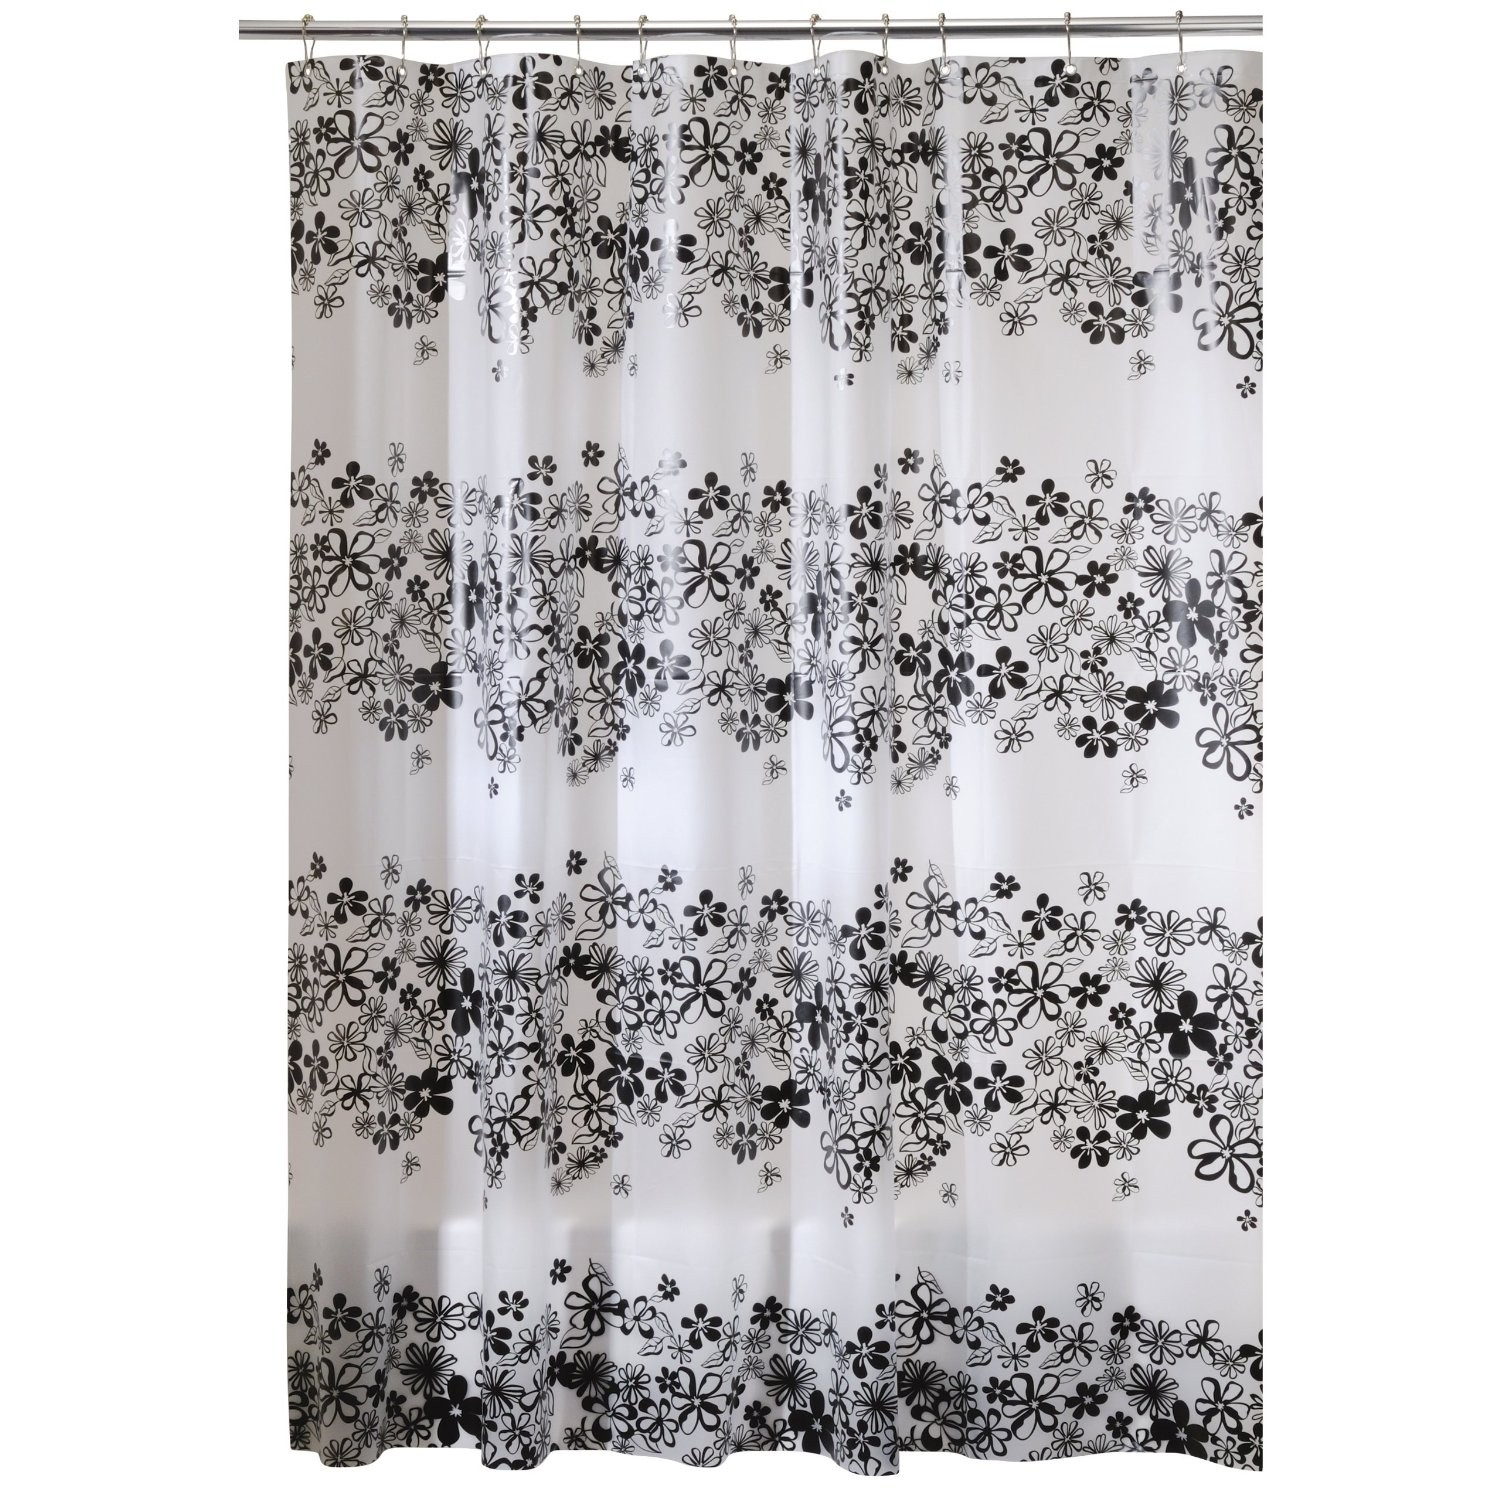 Awesome Interdesign Fiore Eva Stall Size Shower Curtain Black 54 Inches